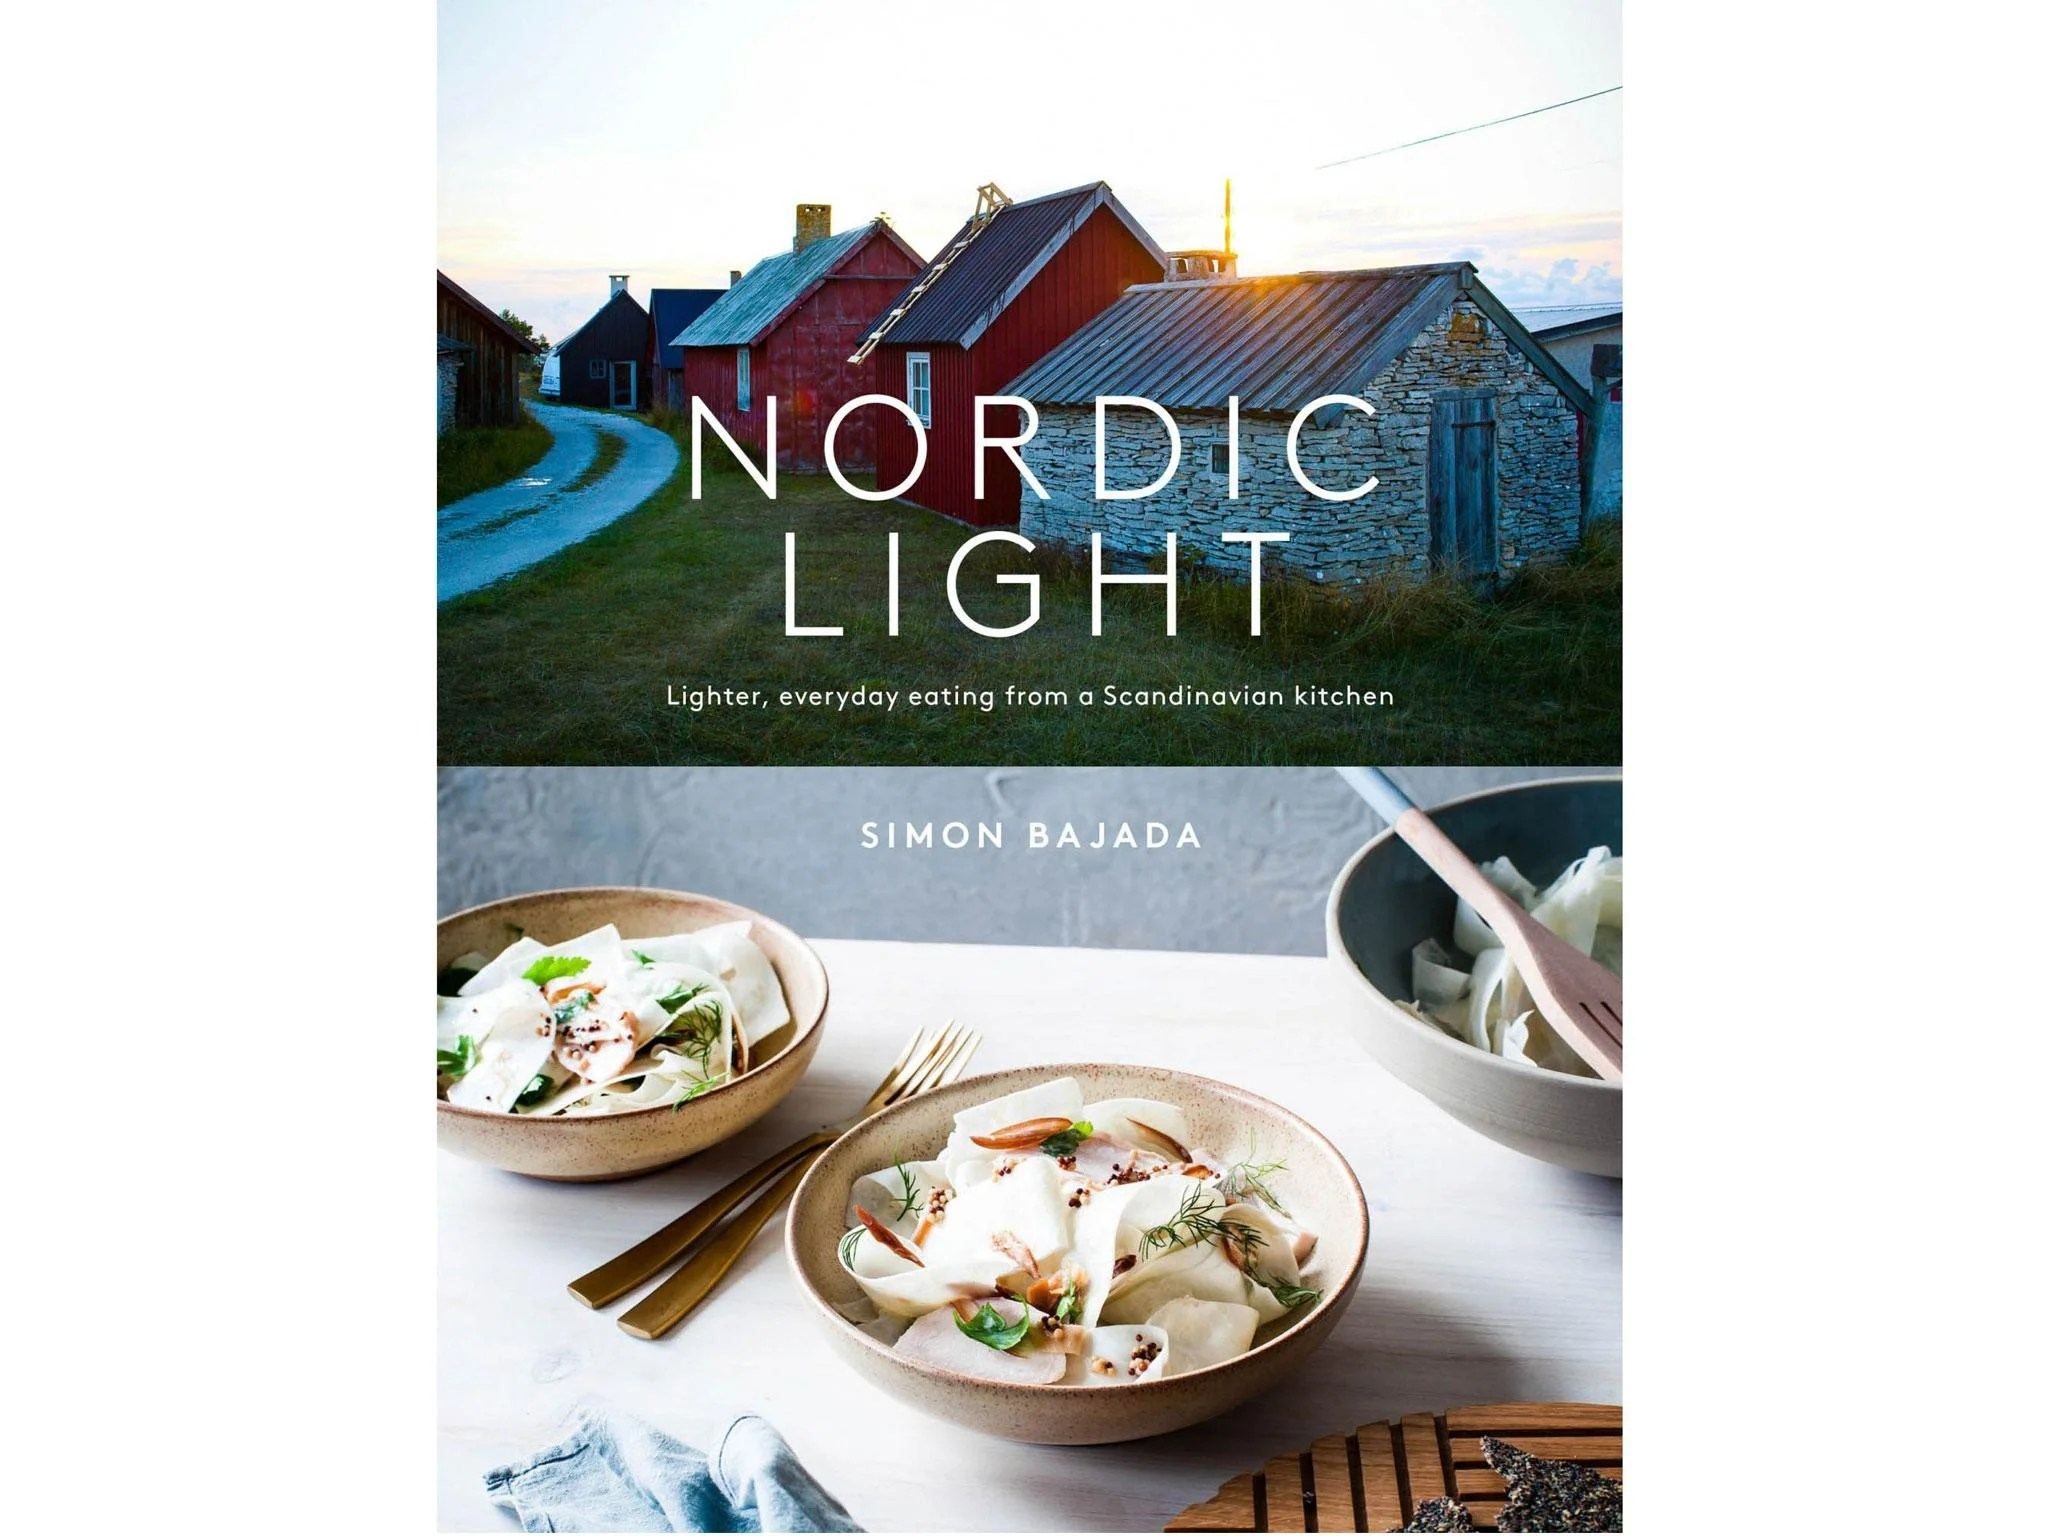 Big Fish Libro 10 Best Scandinavian Cookbooks The Independent